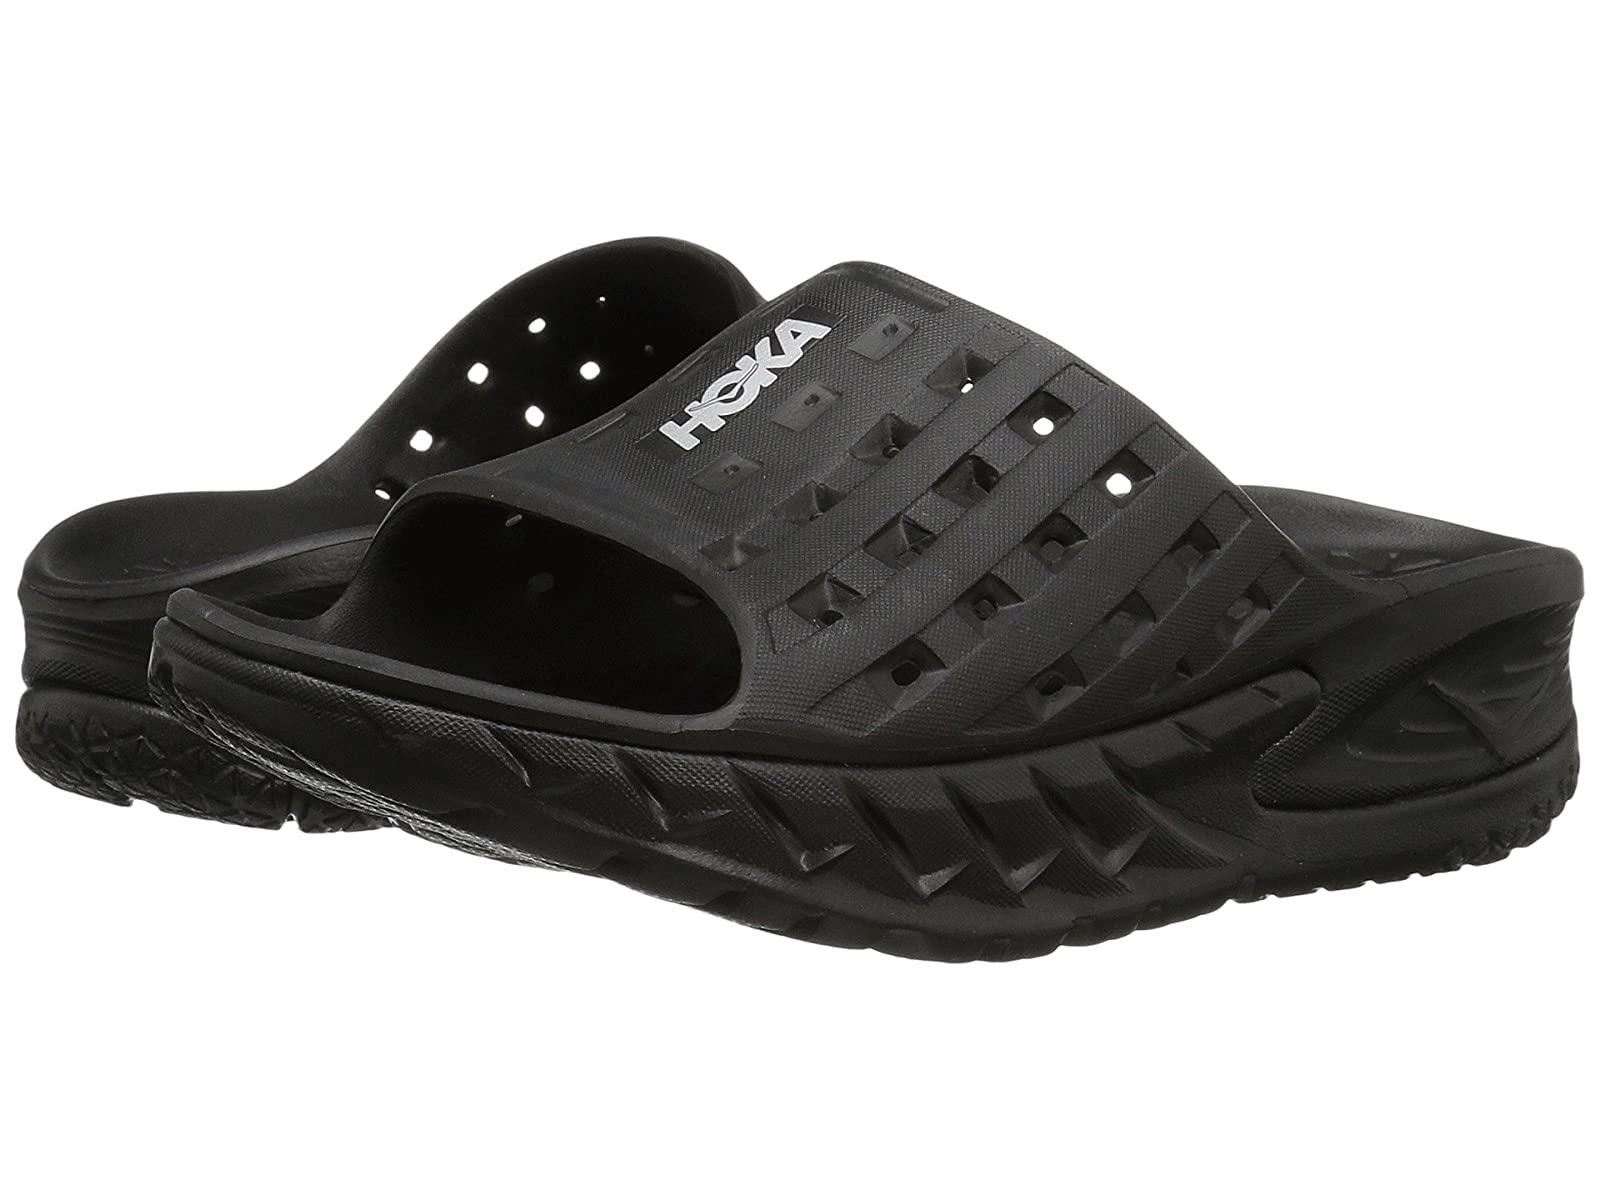 Hoka One One Ora Recovery SlideAtmospheric grades have affordable shoes